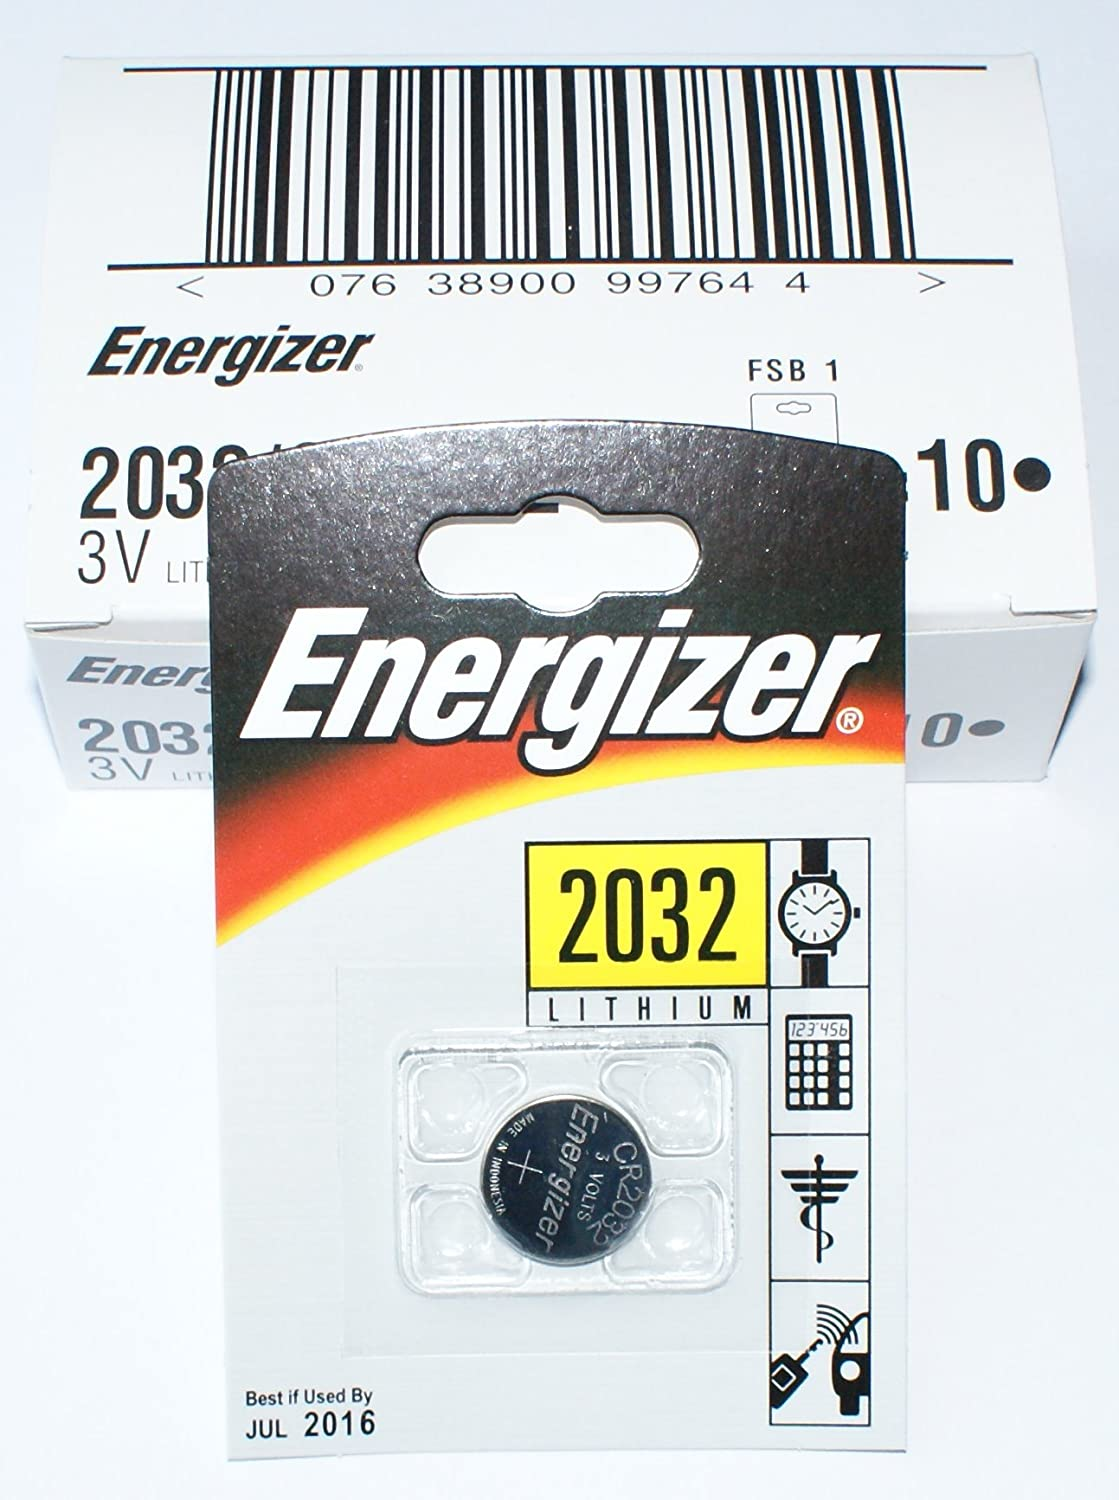 Pack of SEAL limited product 100 Energizer 3v Batteries ECR2032 Lithium Finally popular brand